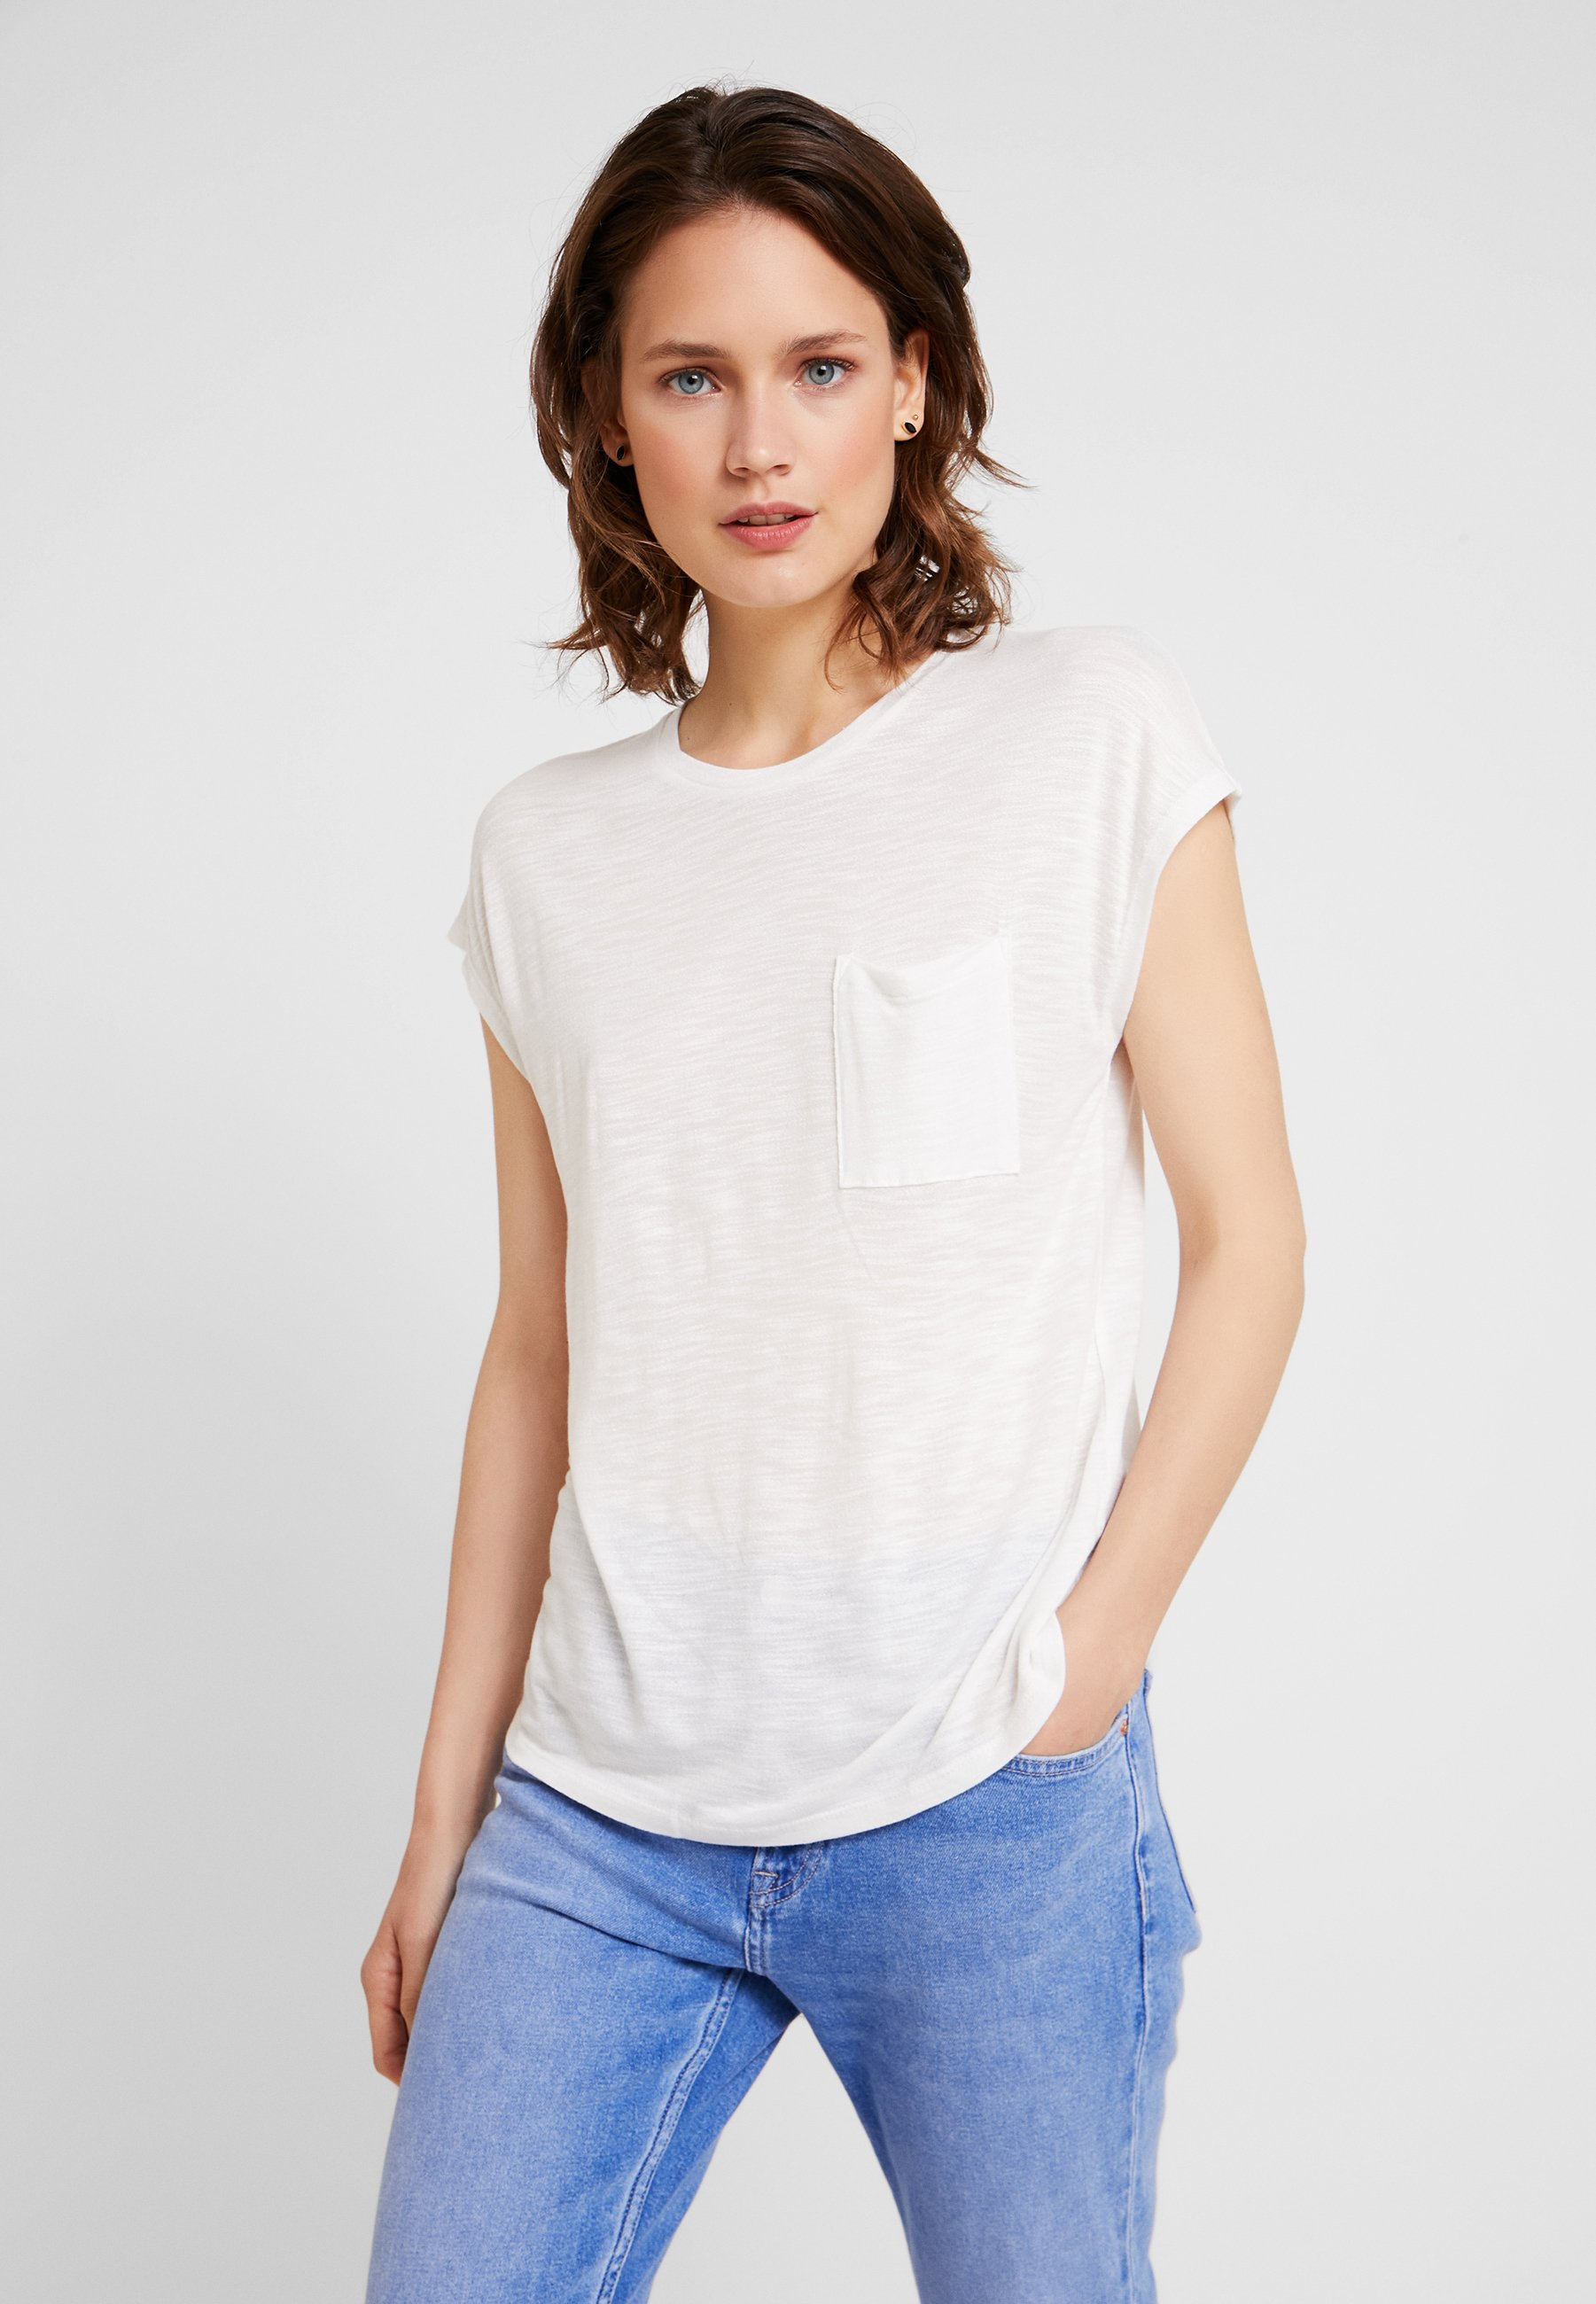 T Story shirt Basic One More White zMVqSUp